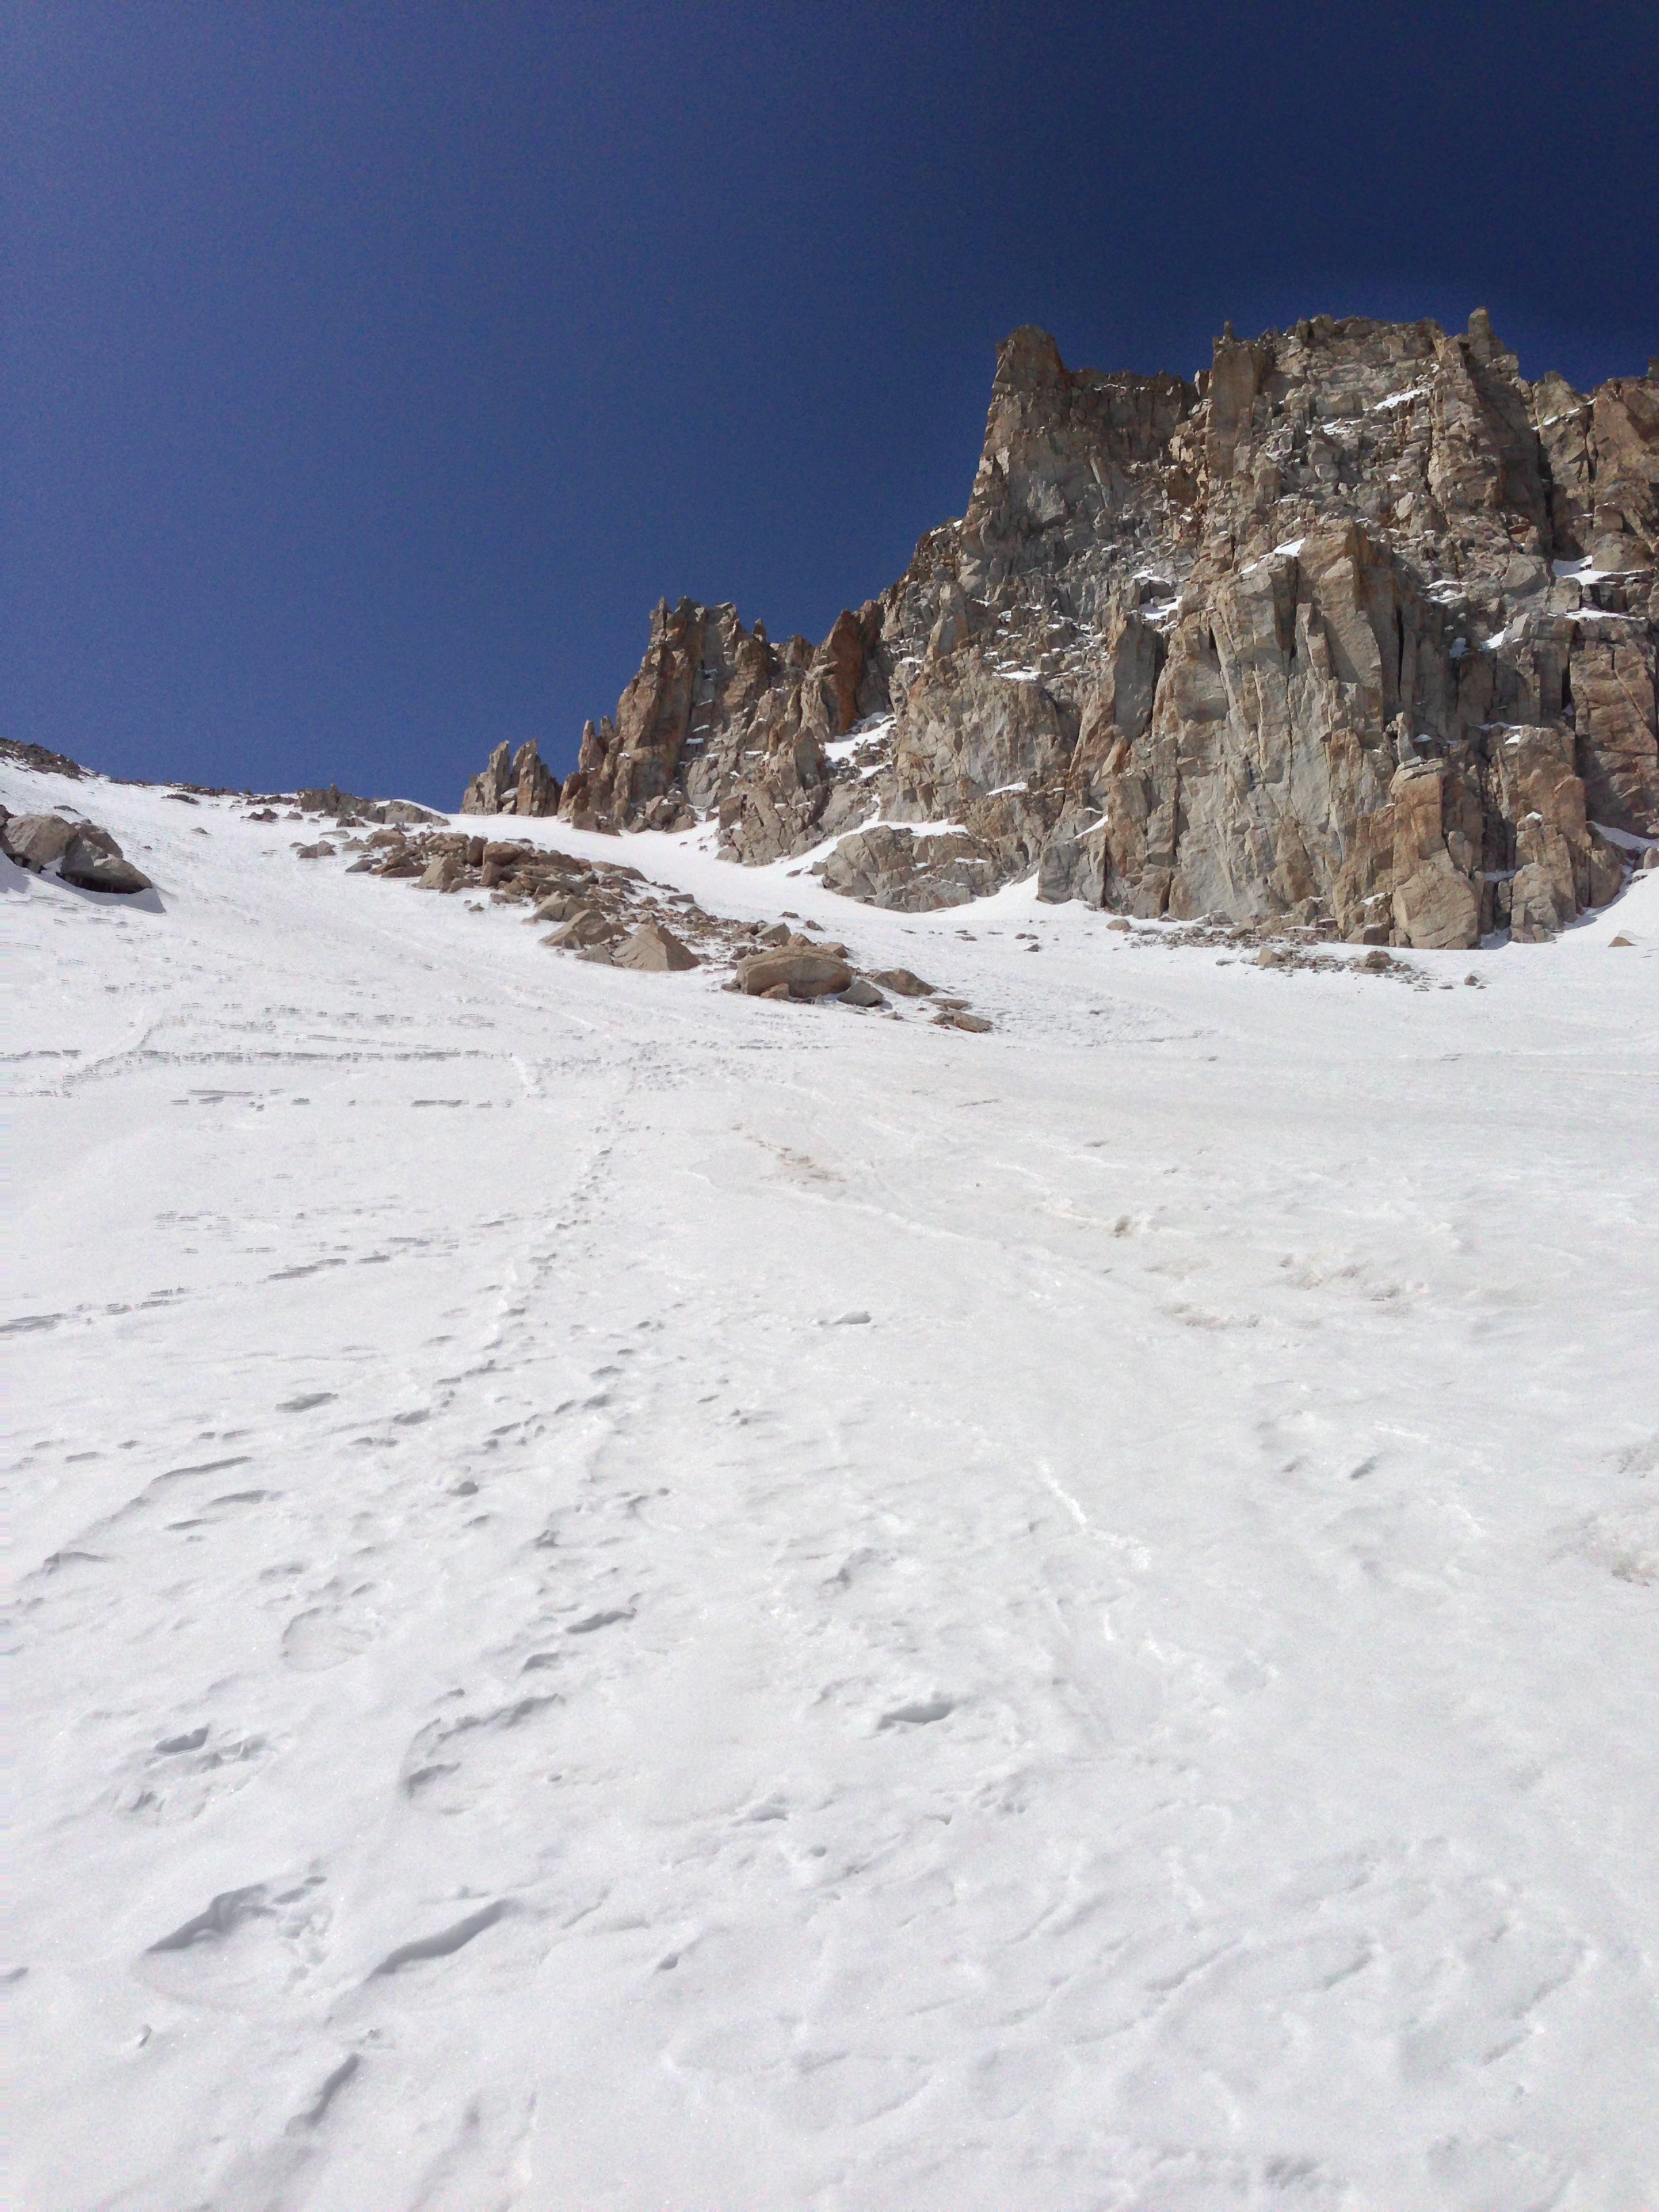 Looking up toward Trail Crest, April 8, 2013, Mt. Whitney